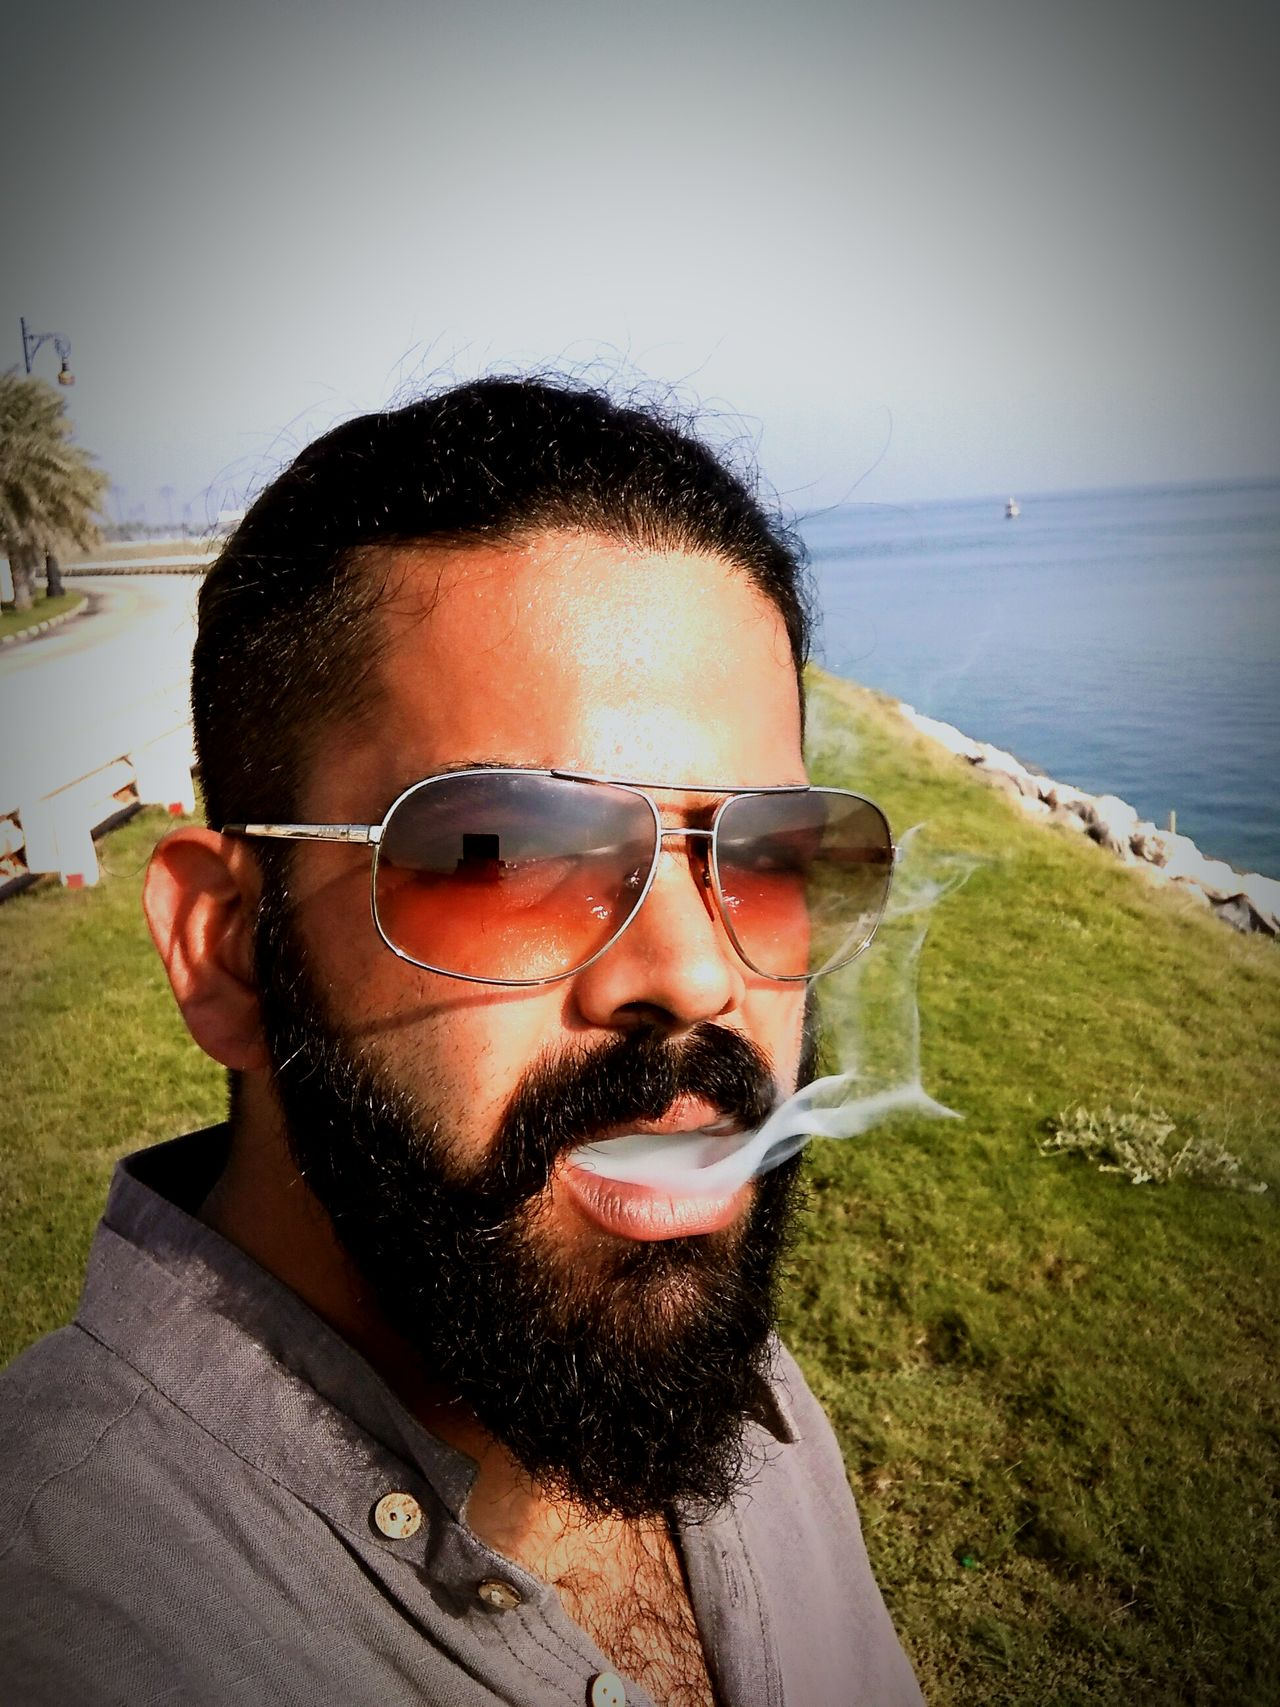 One Man Only Eyeglasses  Young Adult Beard Lifestyles Sky Water Outdoors Close-up Wannabe Self Potrait Headshot Selfobsessed Smokeitout